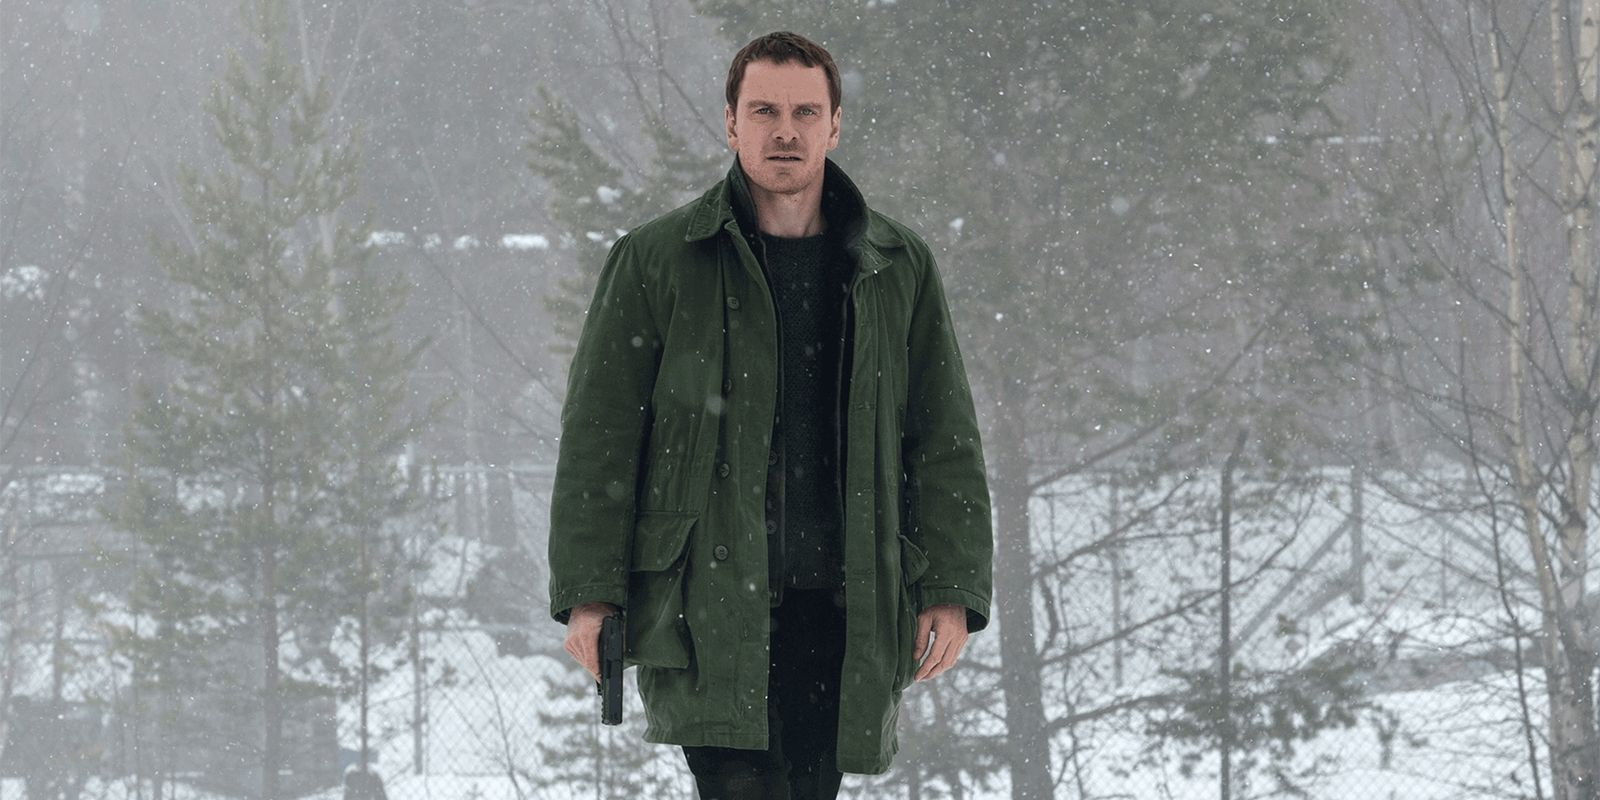 21 New Movies to See in Theaters in October The snowman